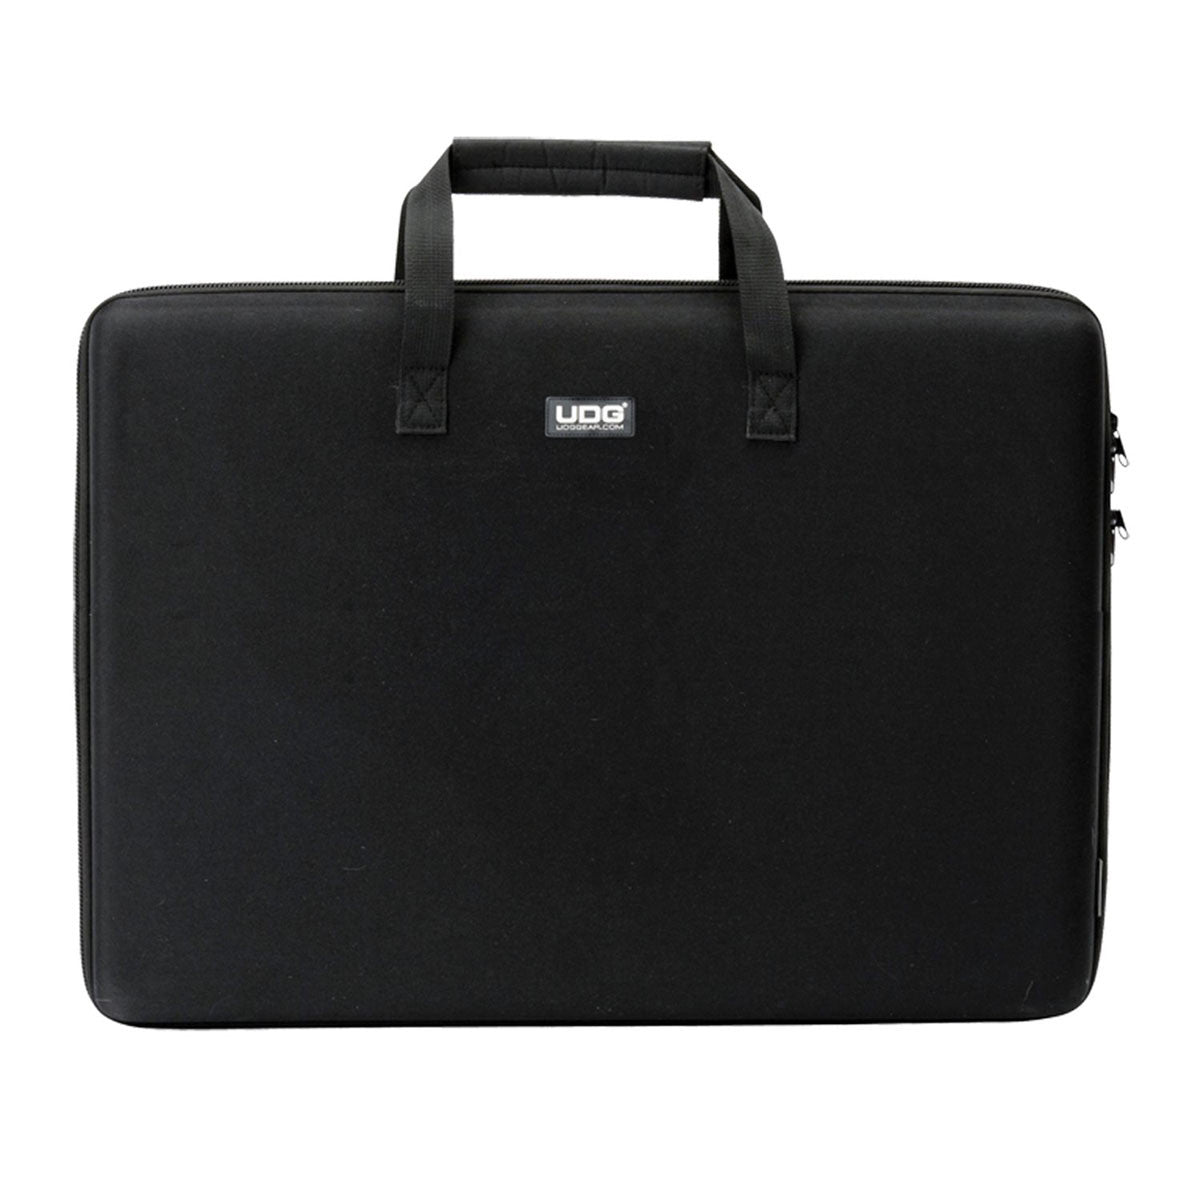 UDG: Creator Controller Hardcase Medium (U8301BL) closed